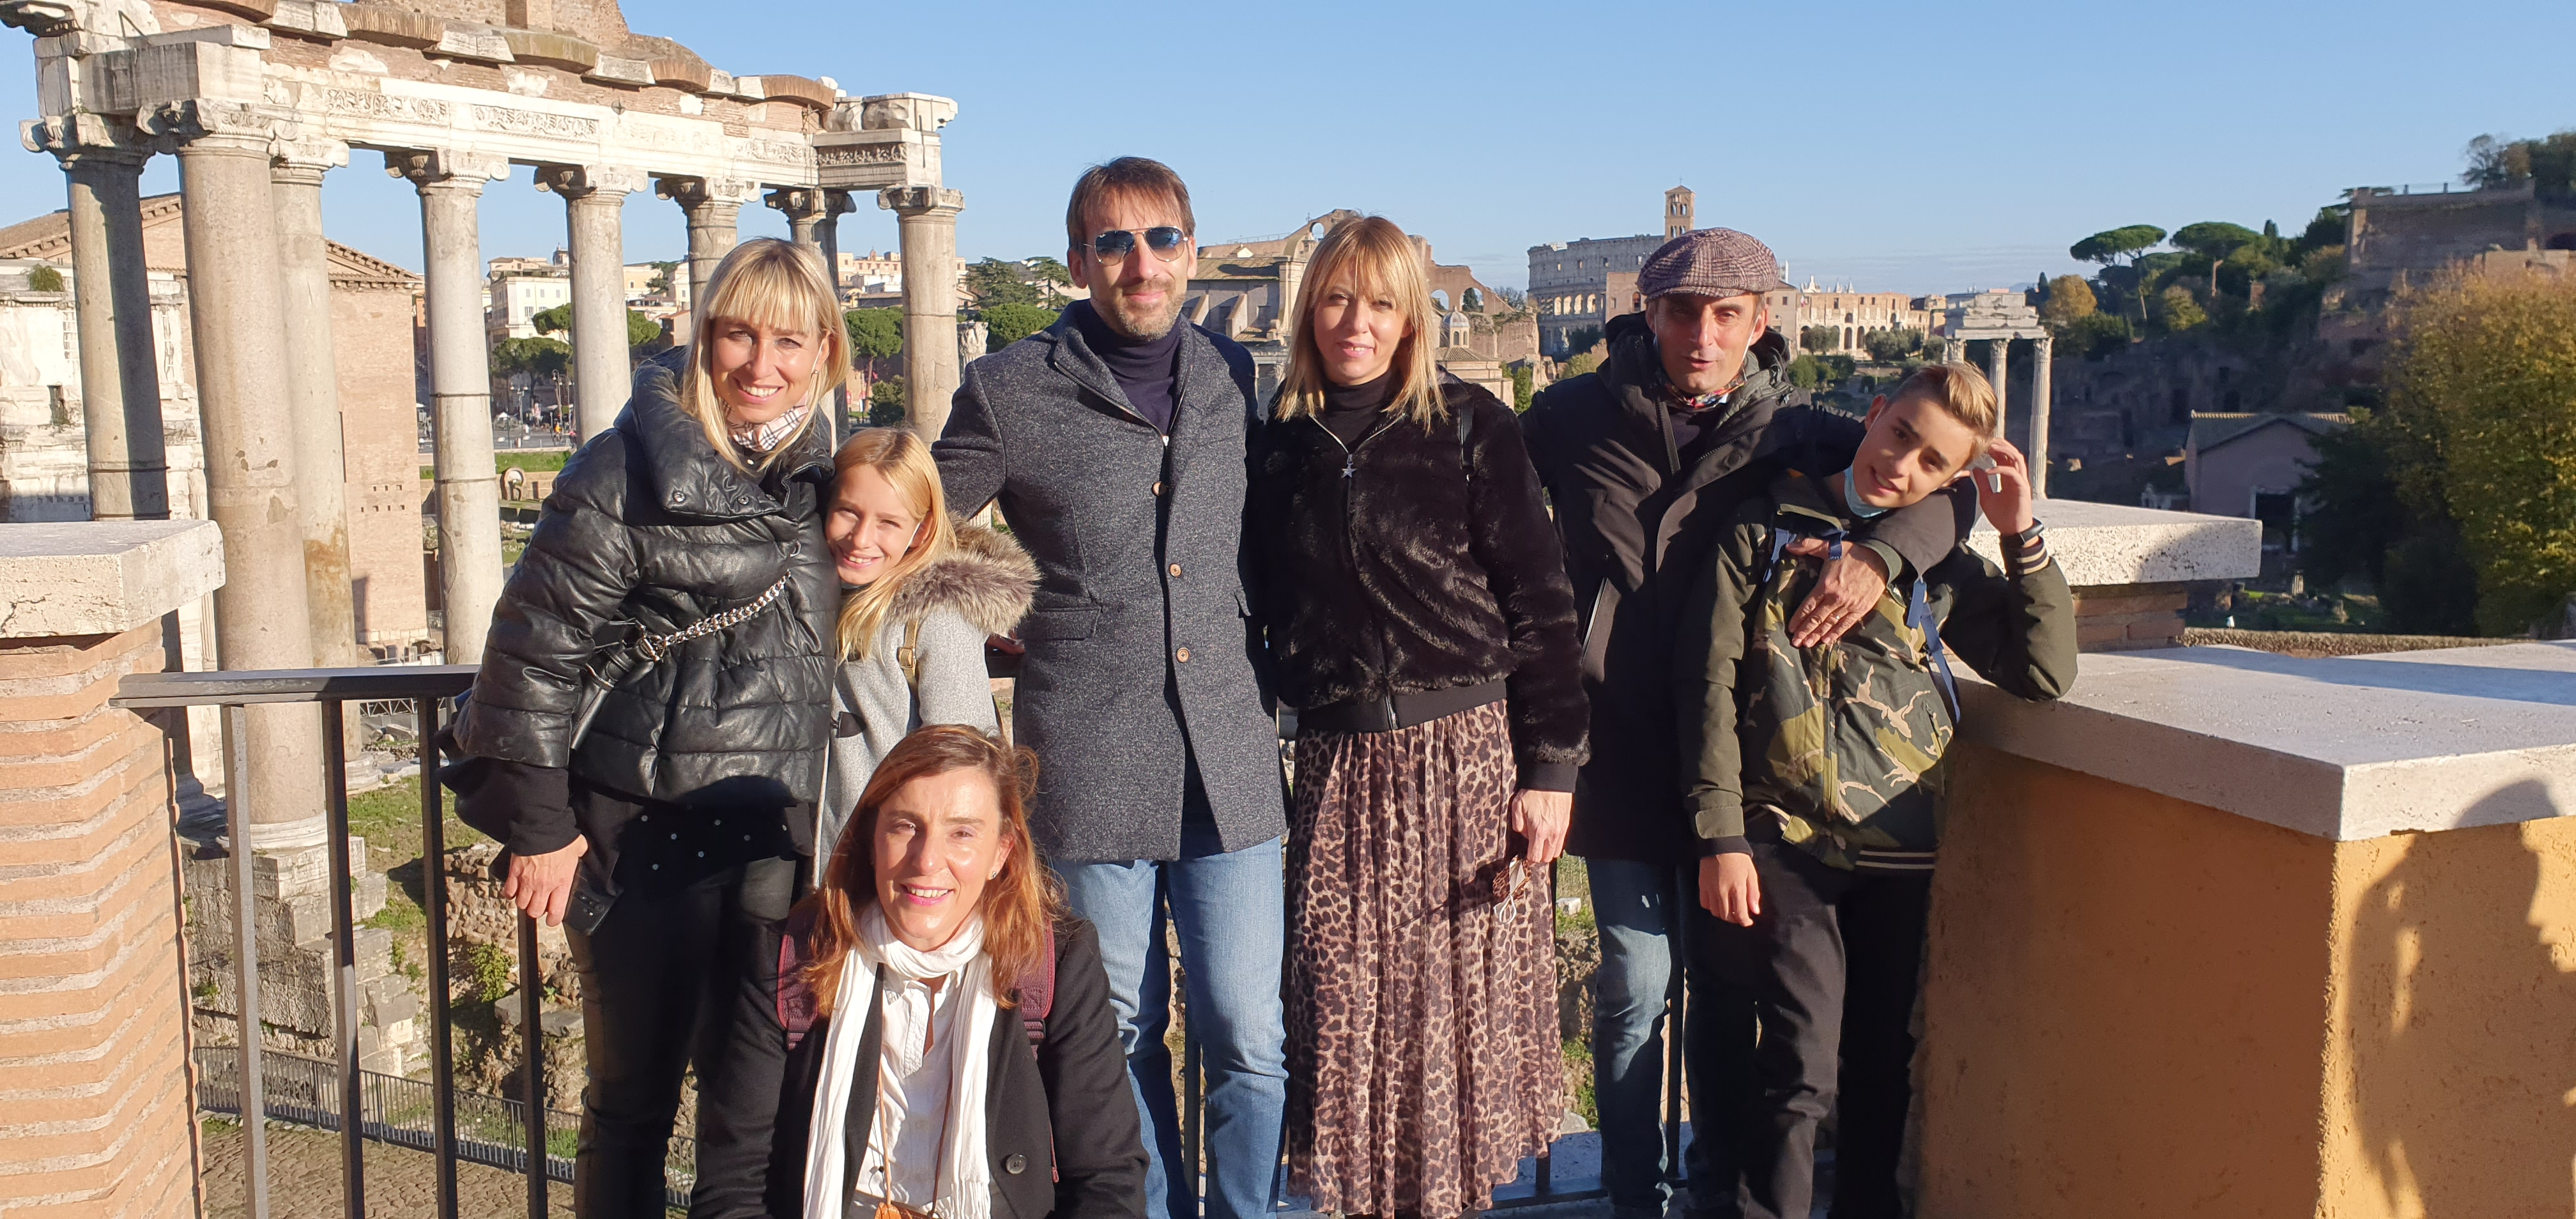 The Roman Forum and Laconi family, Elisa and Agostino